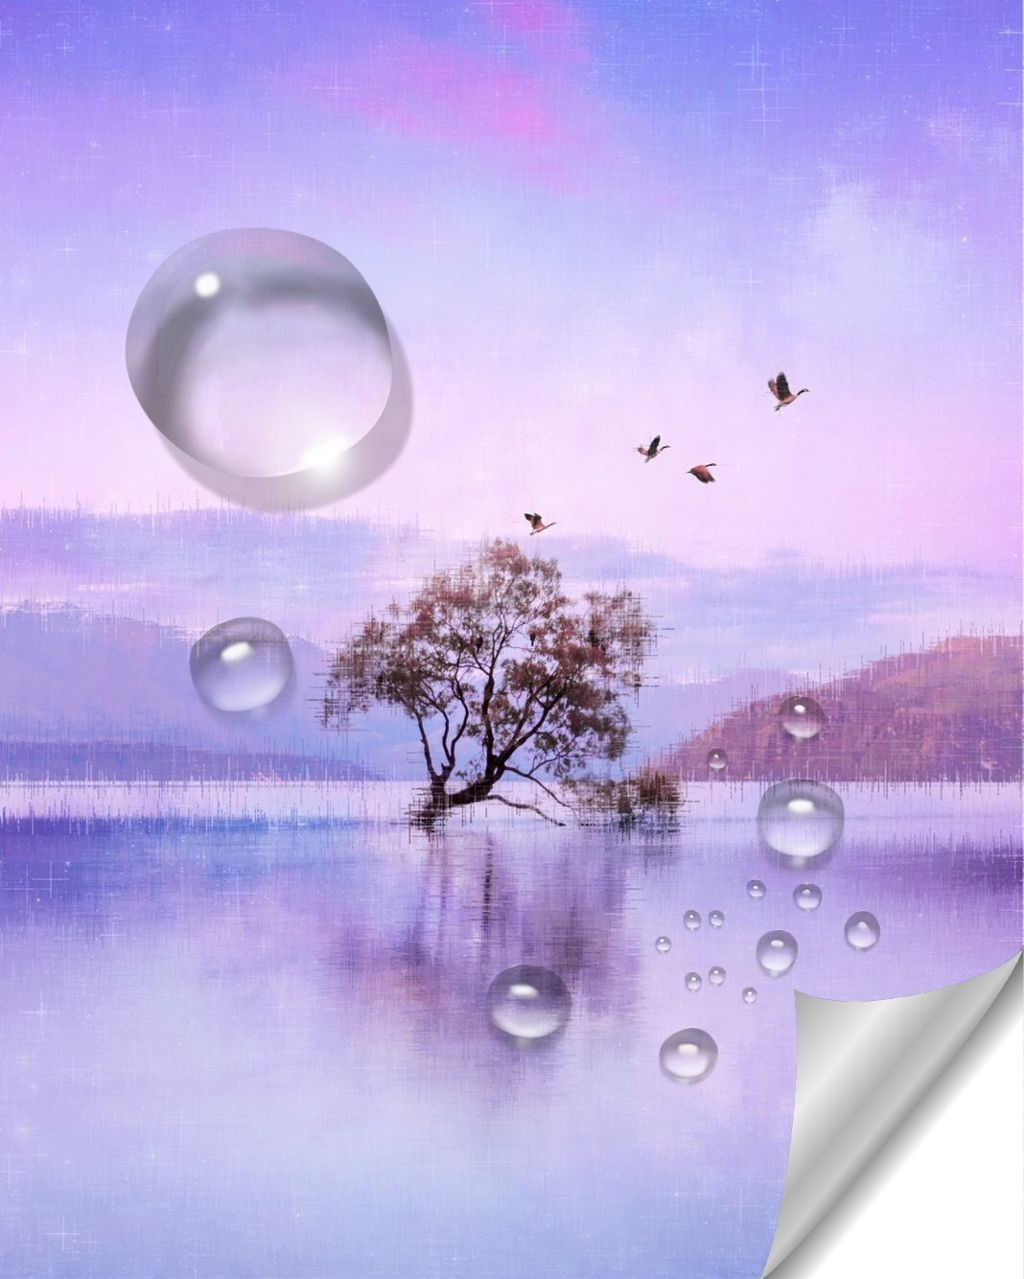 #freetoedit #drop #landscape #purplesky